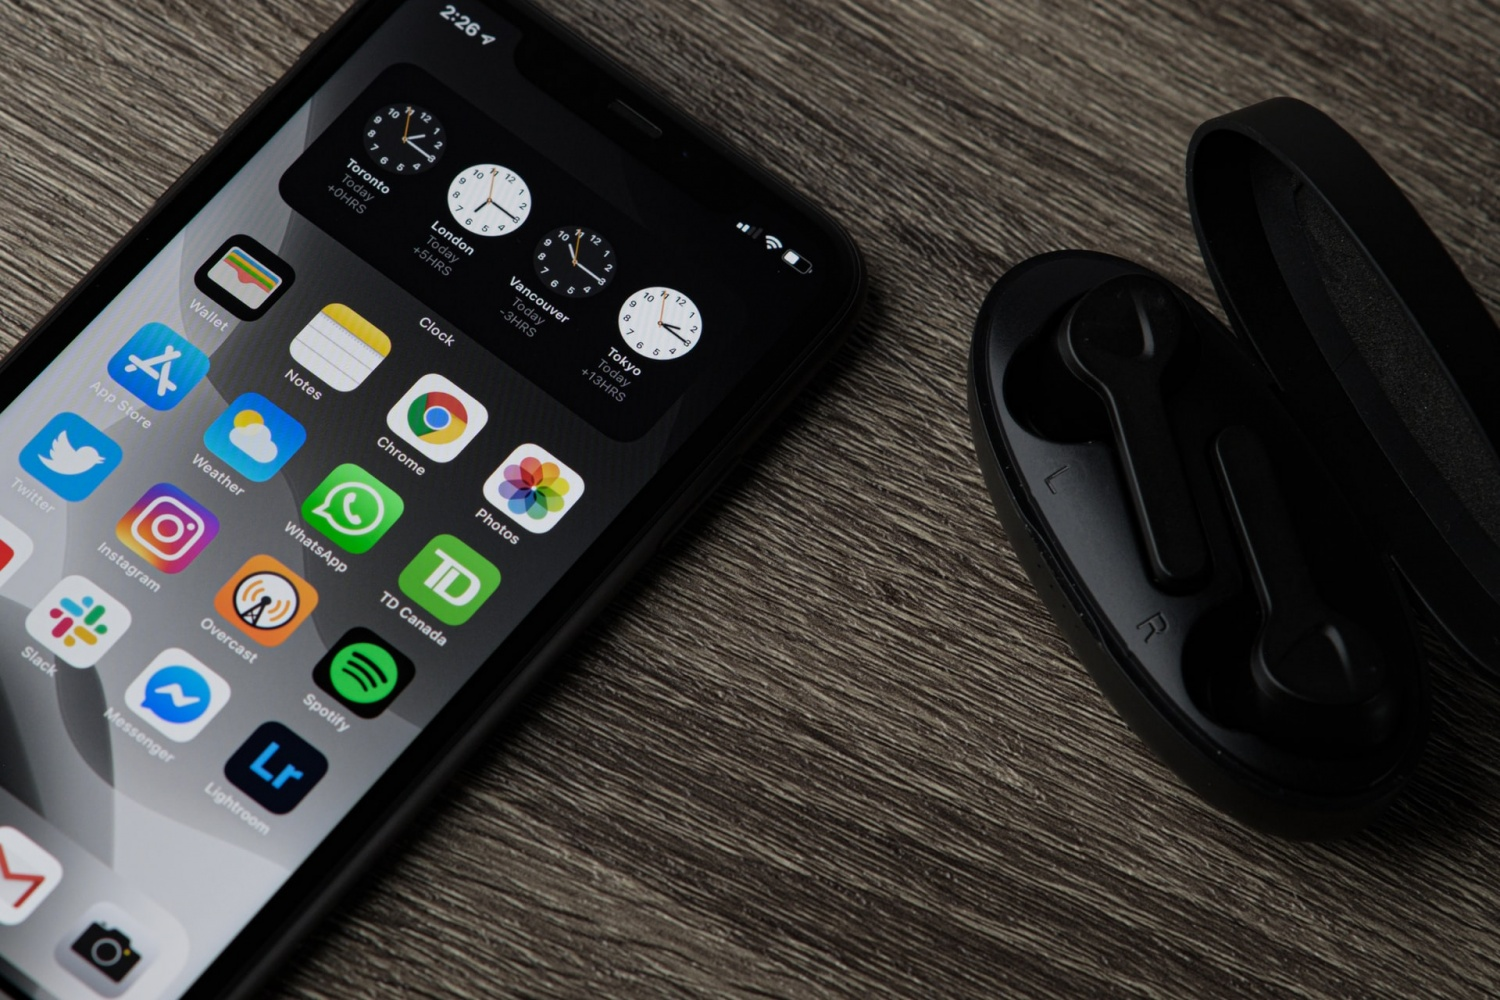 Is Your iPhone Overheating While Charging, After Update? 7 Ways to Cool Down Your Device and Prevent Long-Term Damage